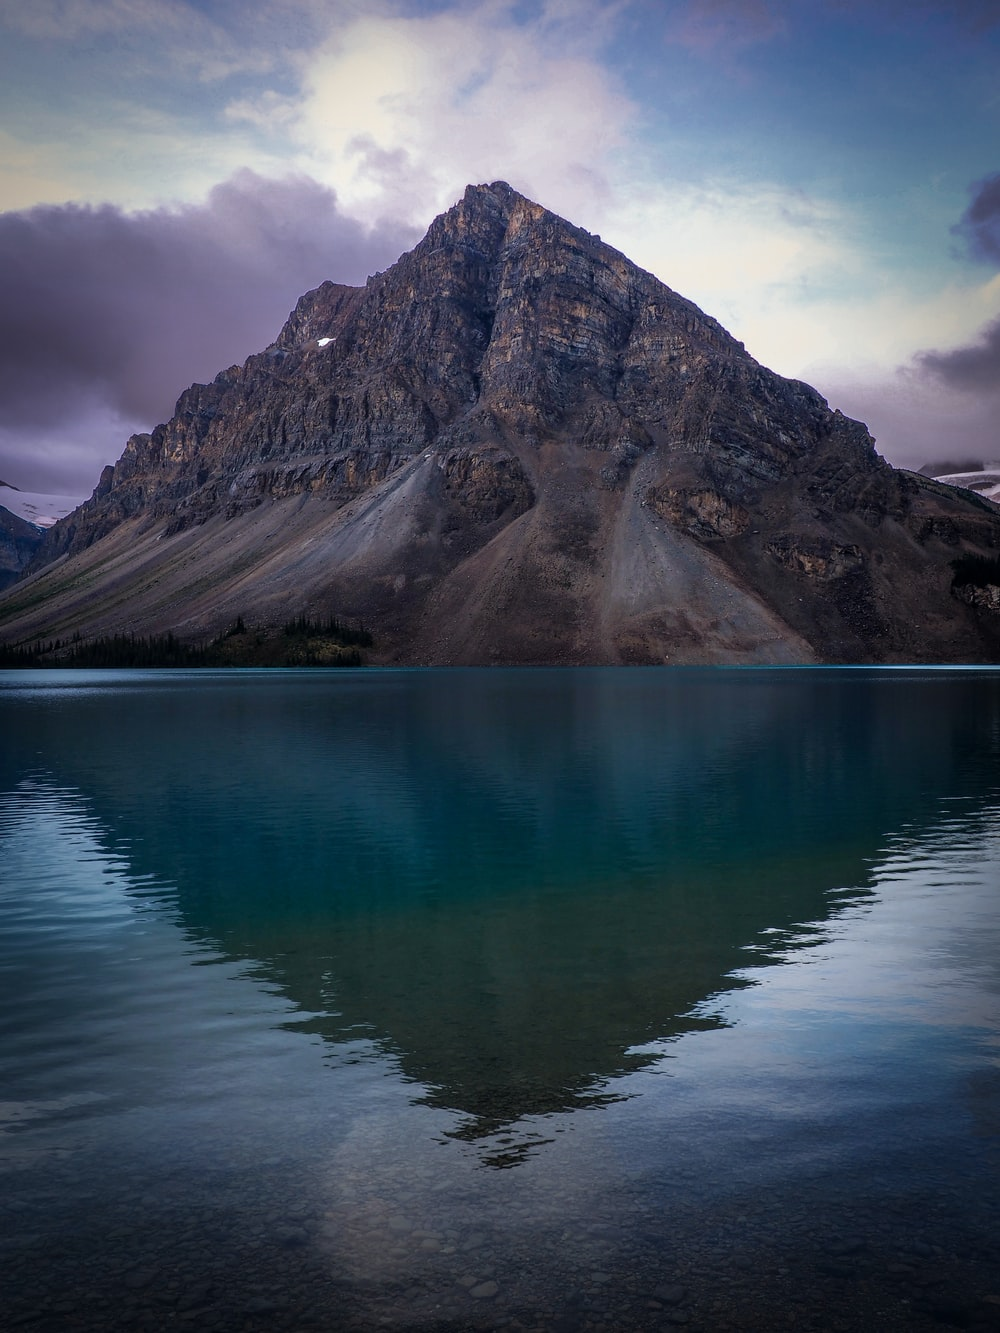 lake near mountain under cloudy sky during daytime